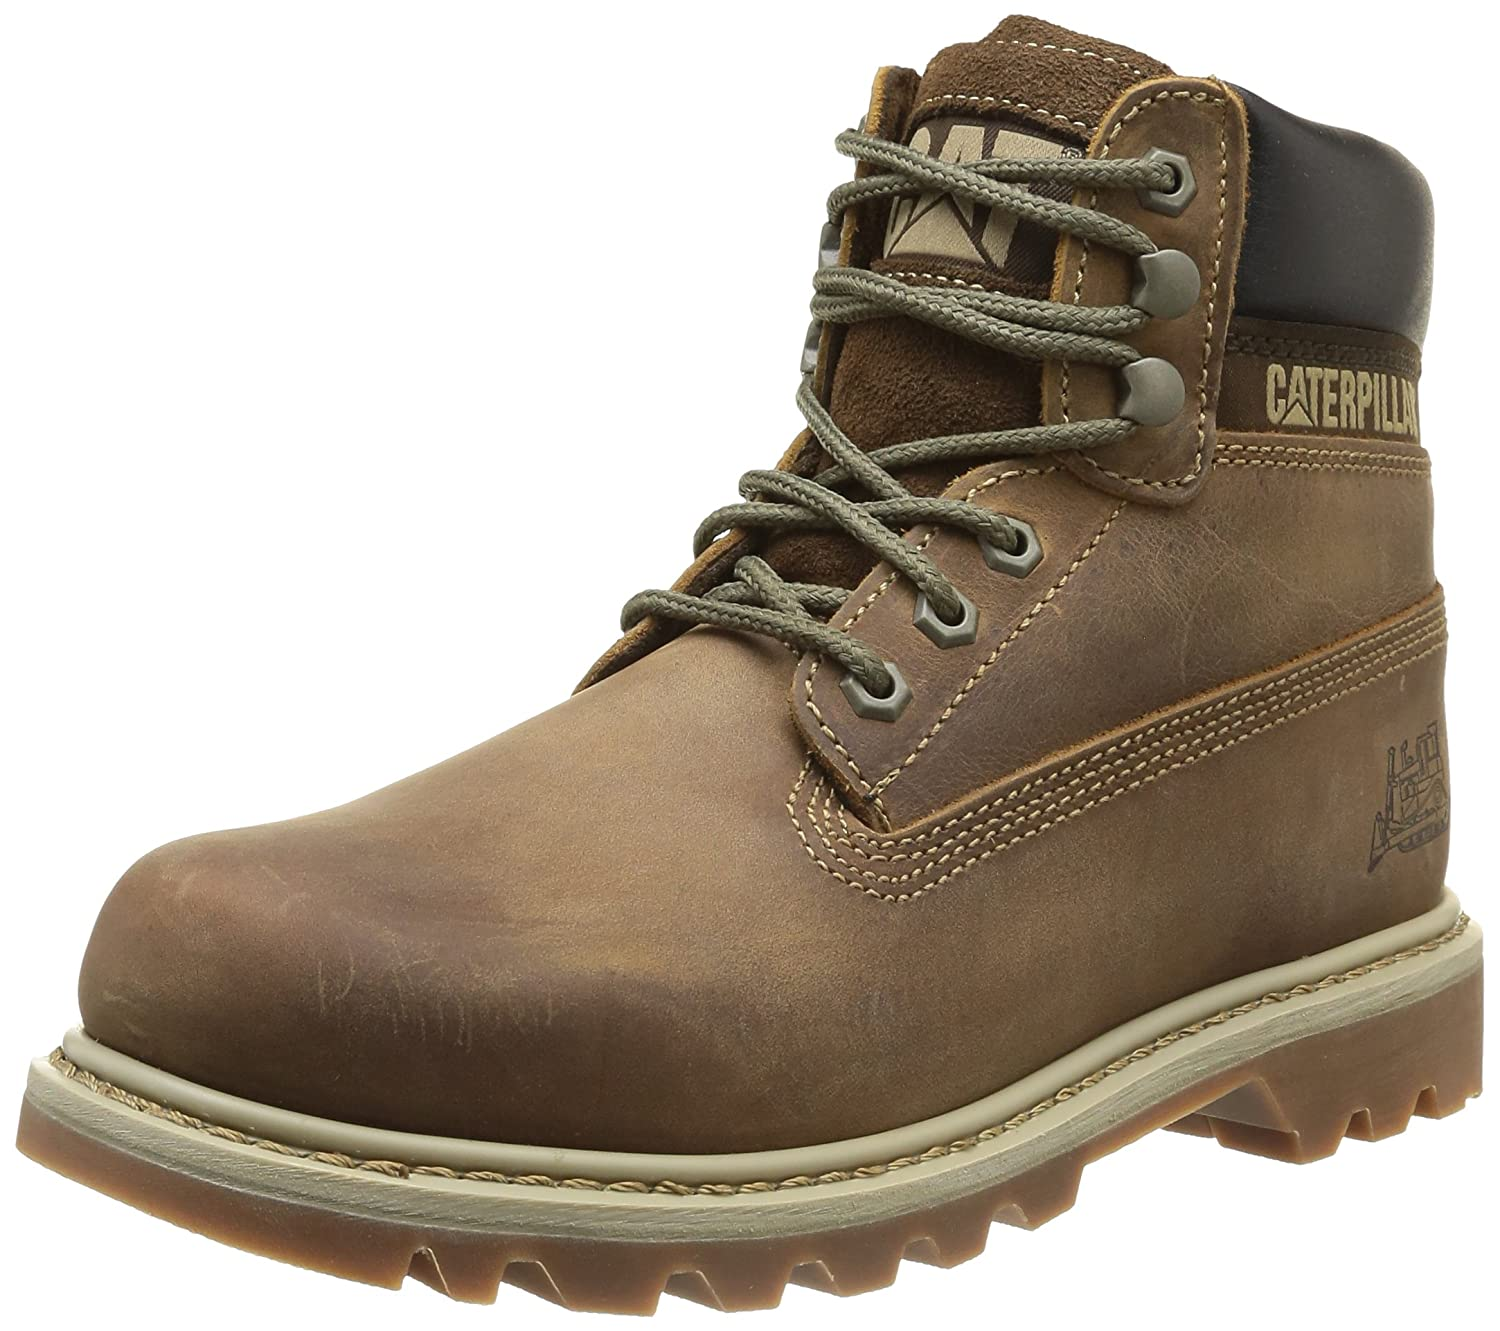 TALLA 45 EU. Caterpillar Colorado Honey WC44100940, Botas